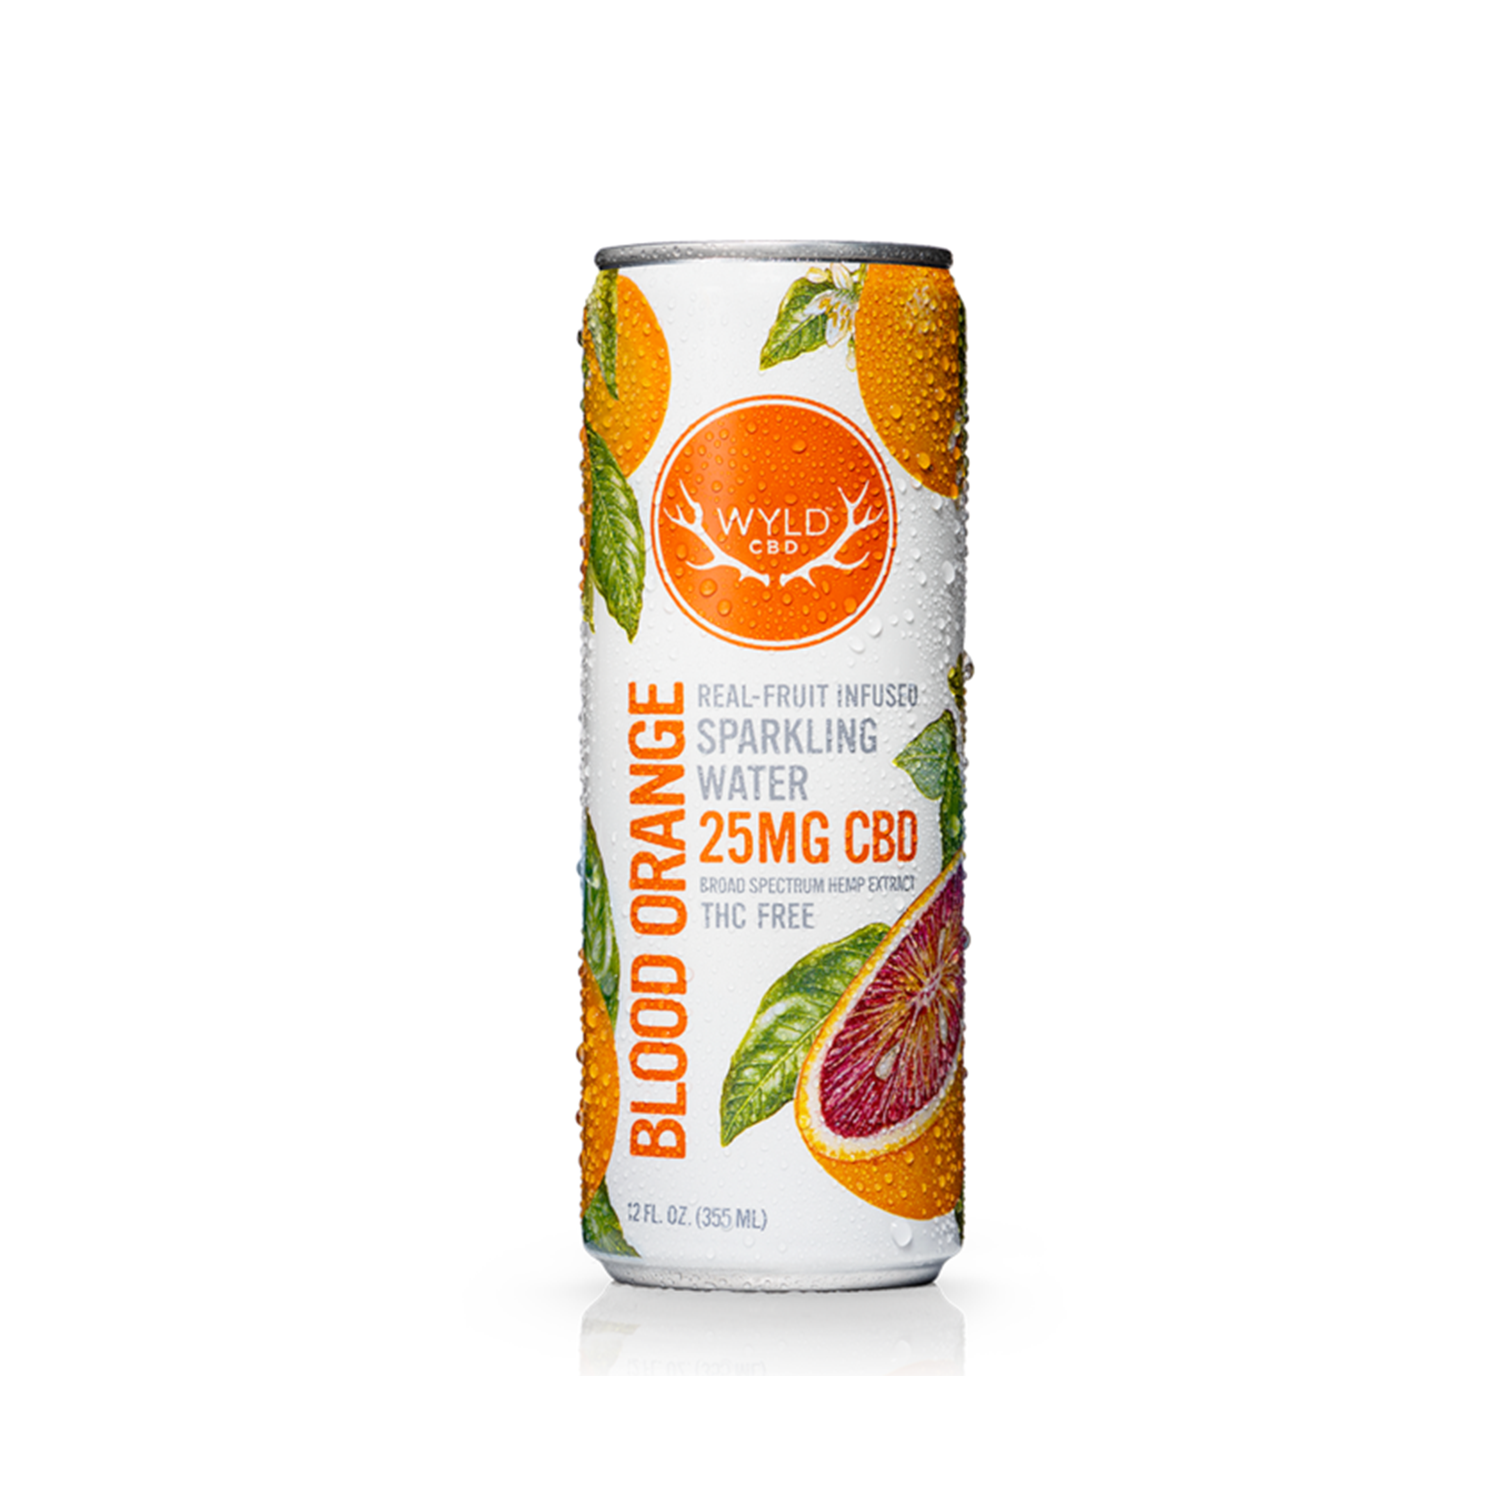 Wyld Sparkling Water | Blood Orange 25mg CBD